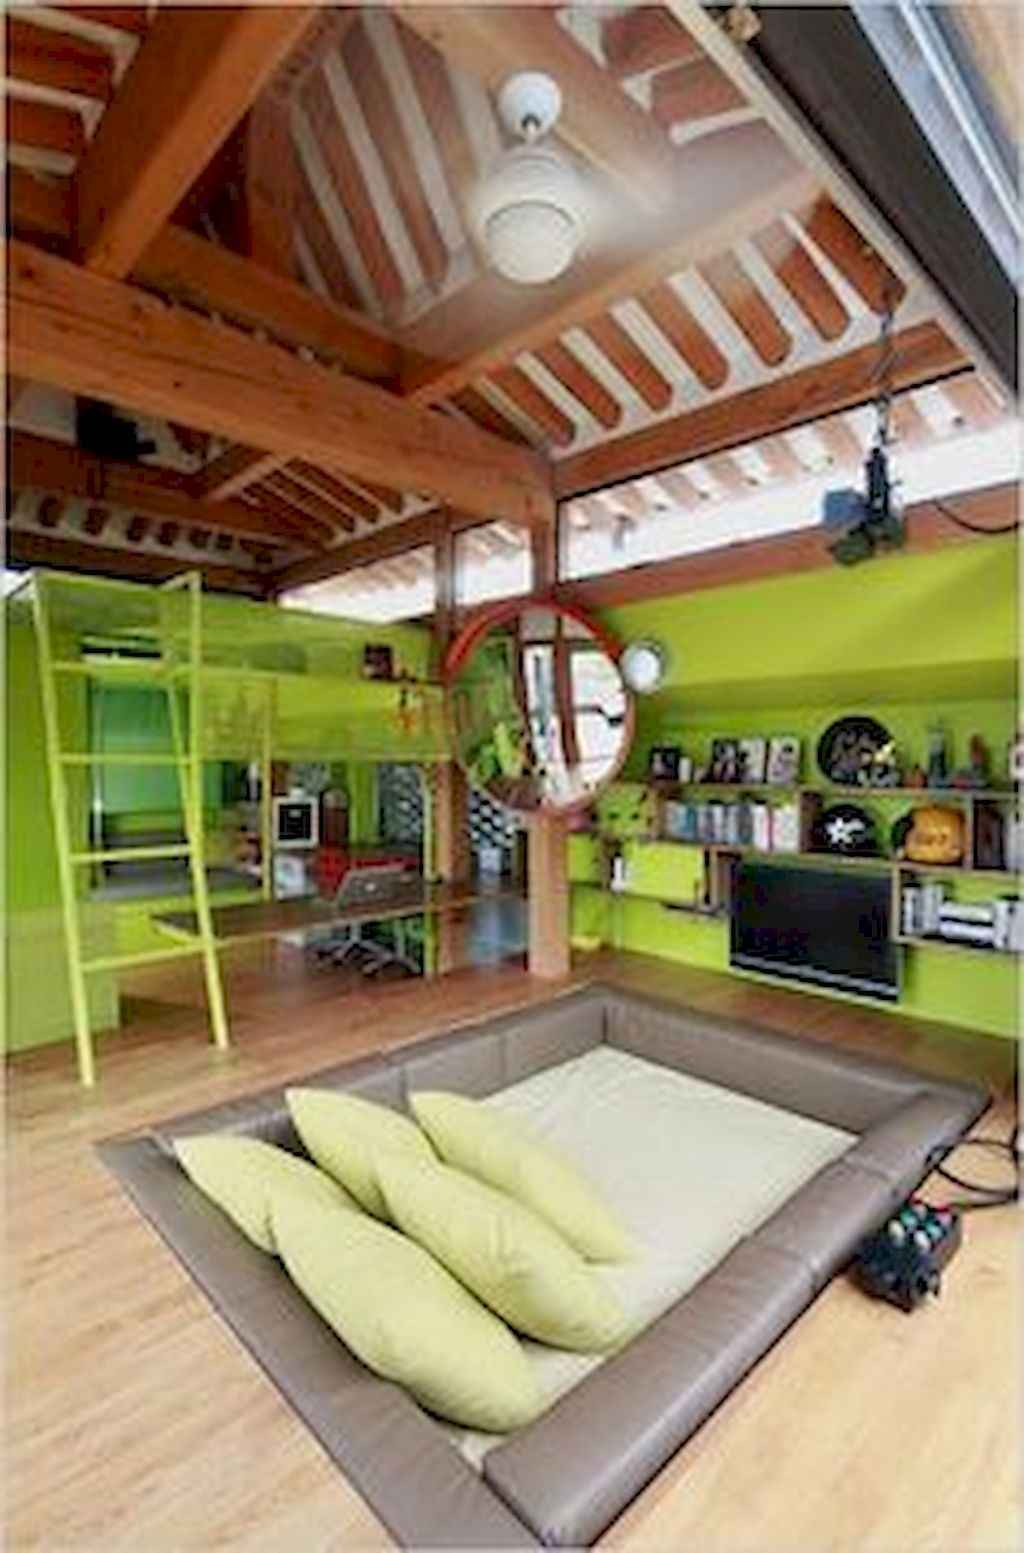 Awesome ideas bedroom for kids (8)